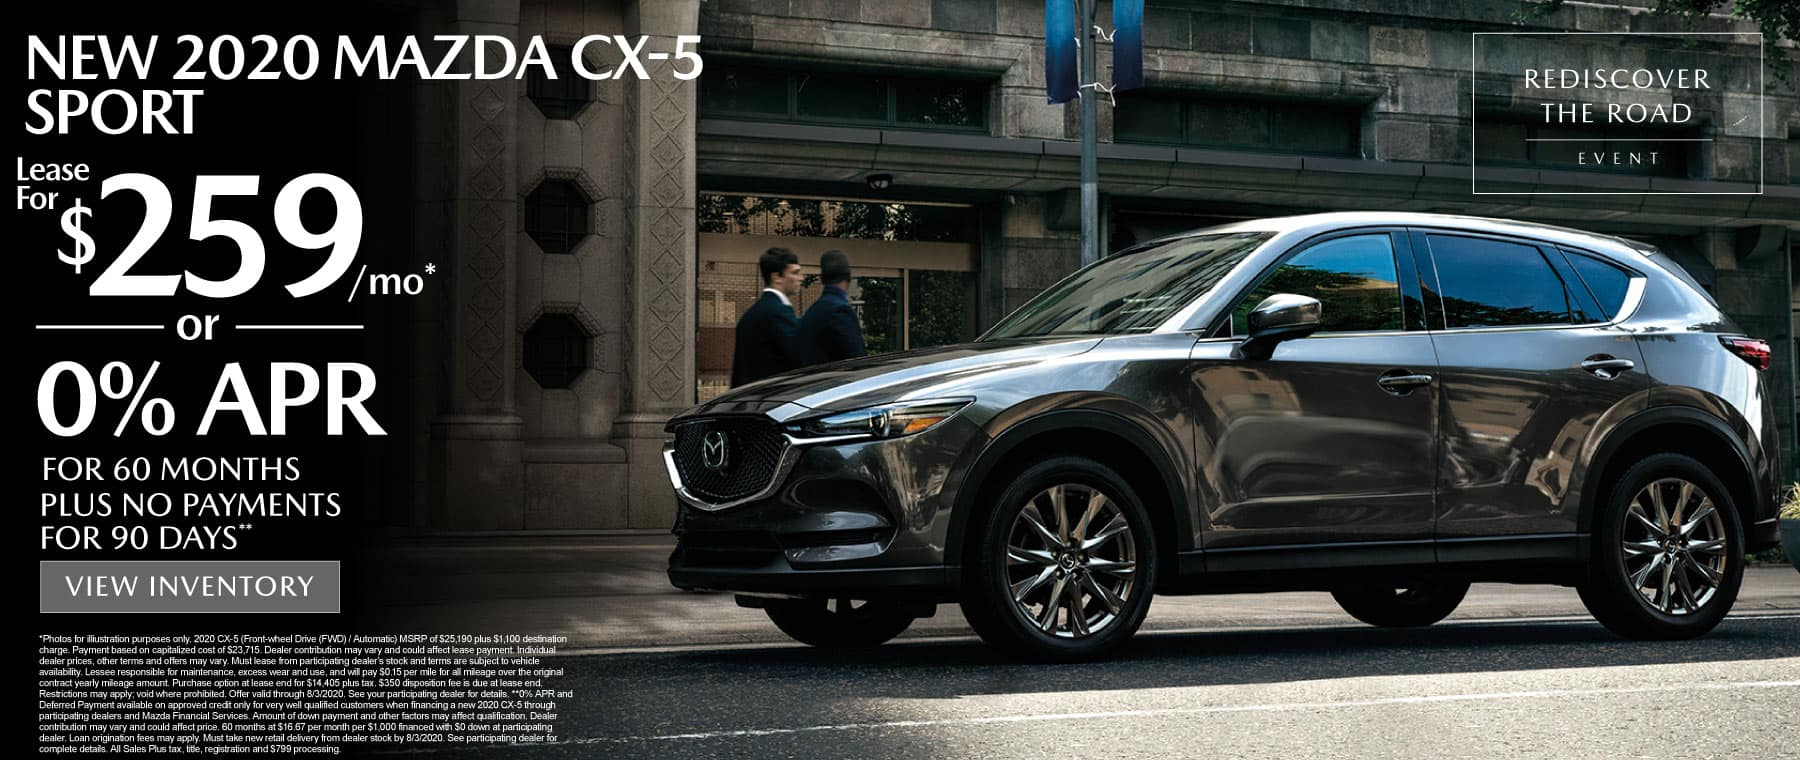 2020 Mazda CX-5 Sport lease for $259 a mo. 0% APR for 60 mos plus no payments for 90 days.